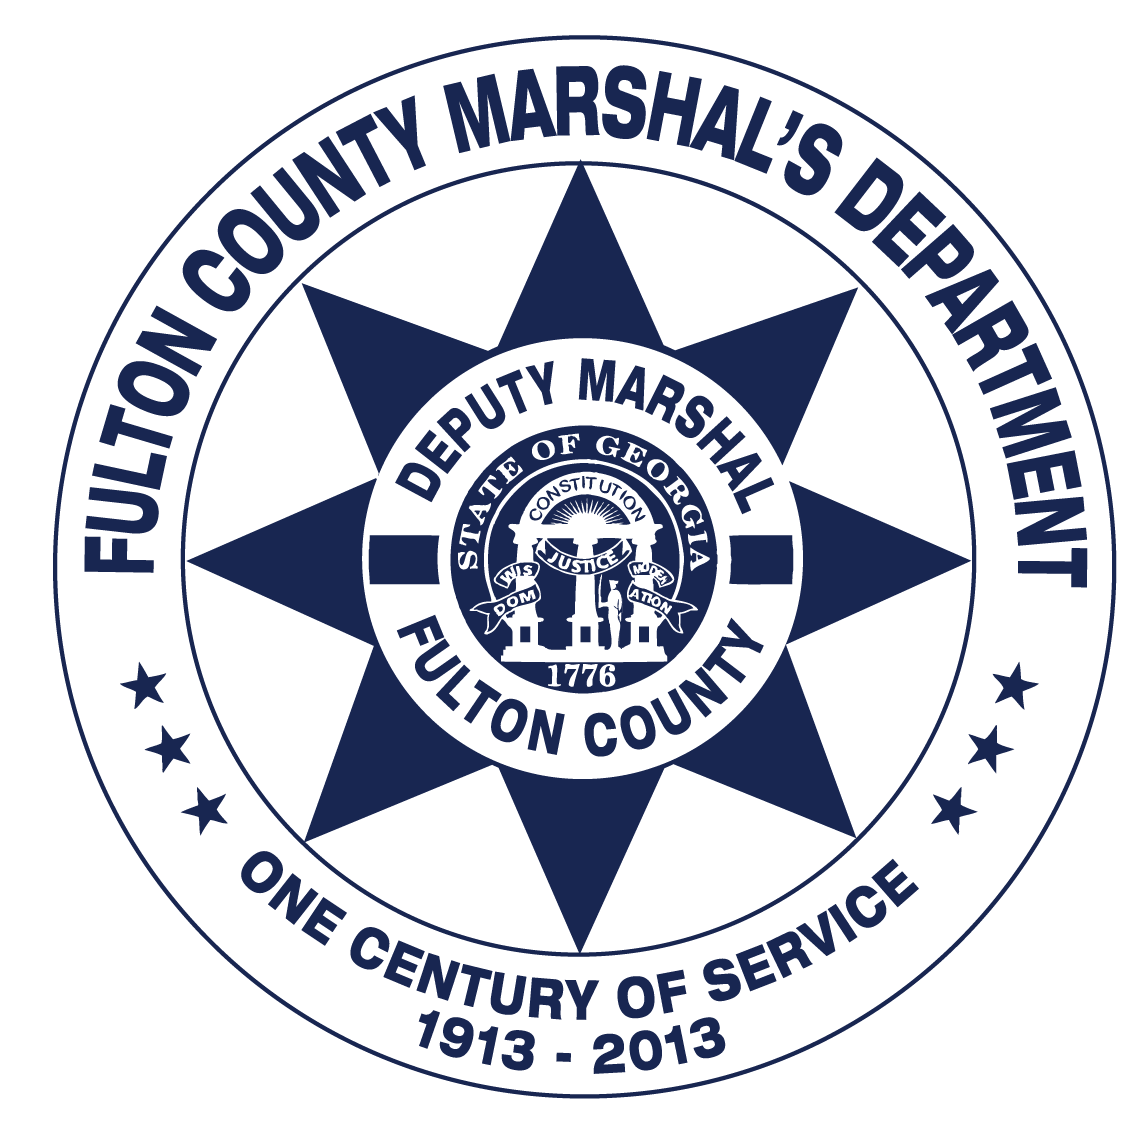 logo for the Fulton County Marshal's Department